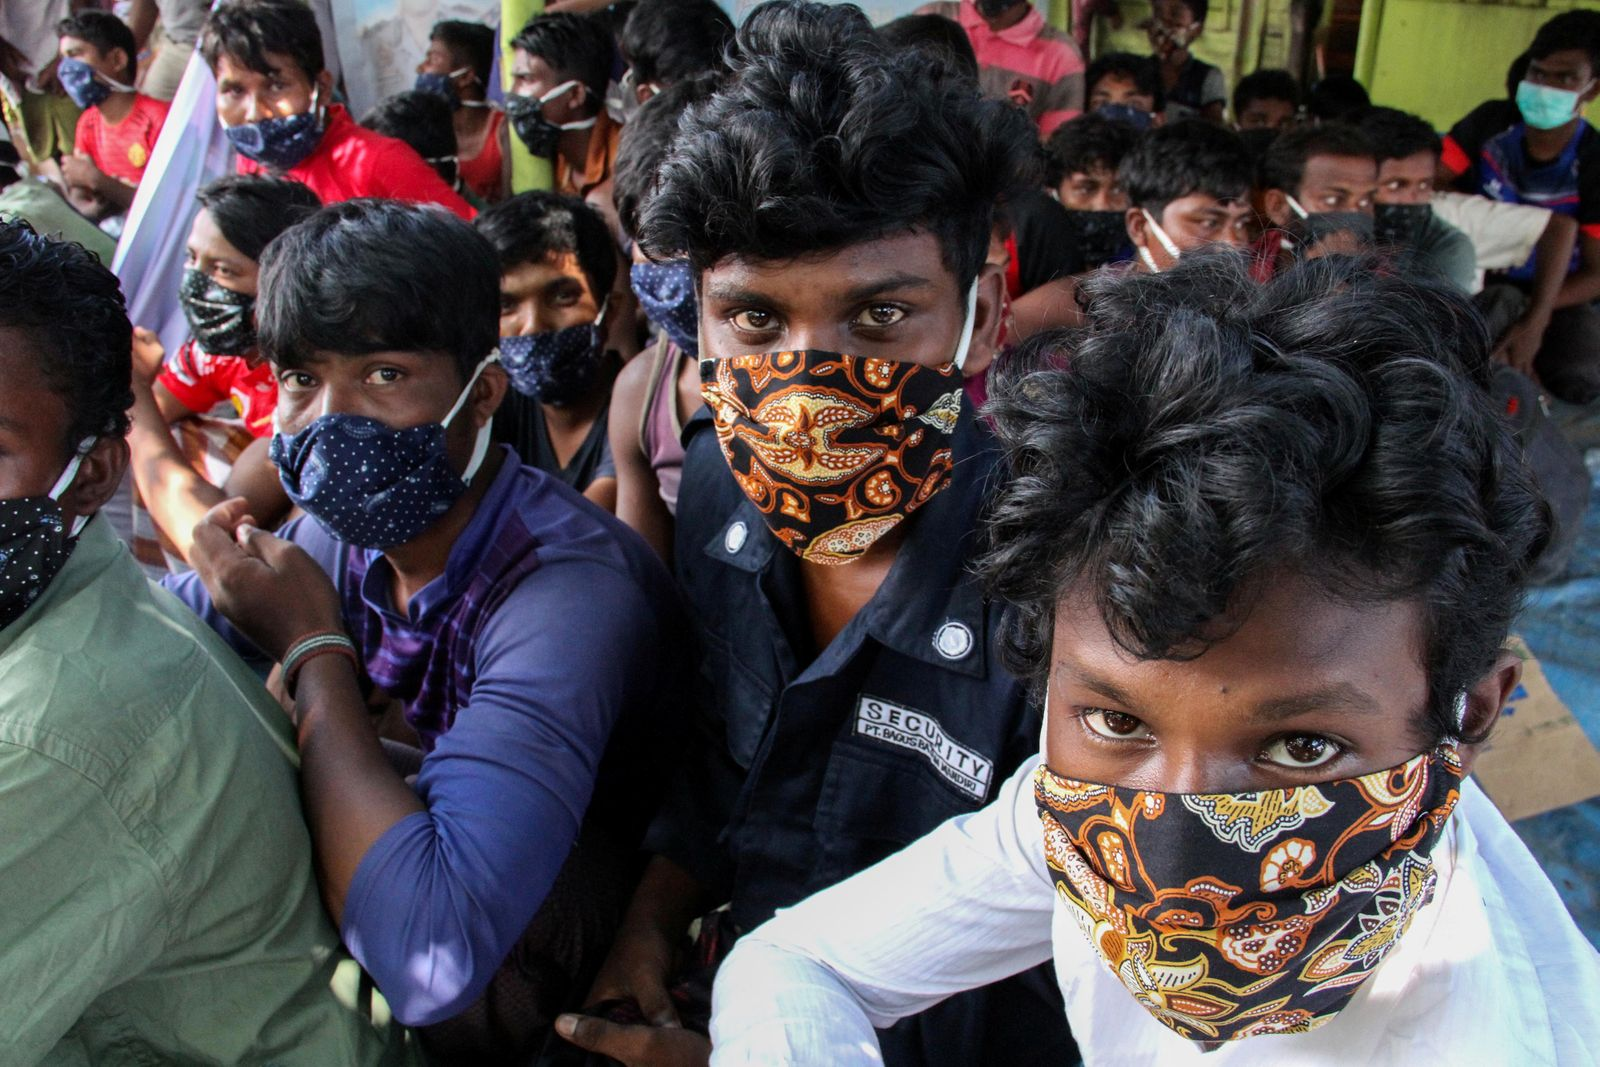 Rohingya refugees wearing protective face masks are pictured in Lhokseumawe